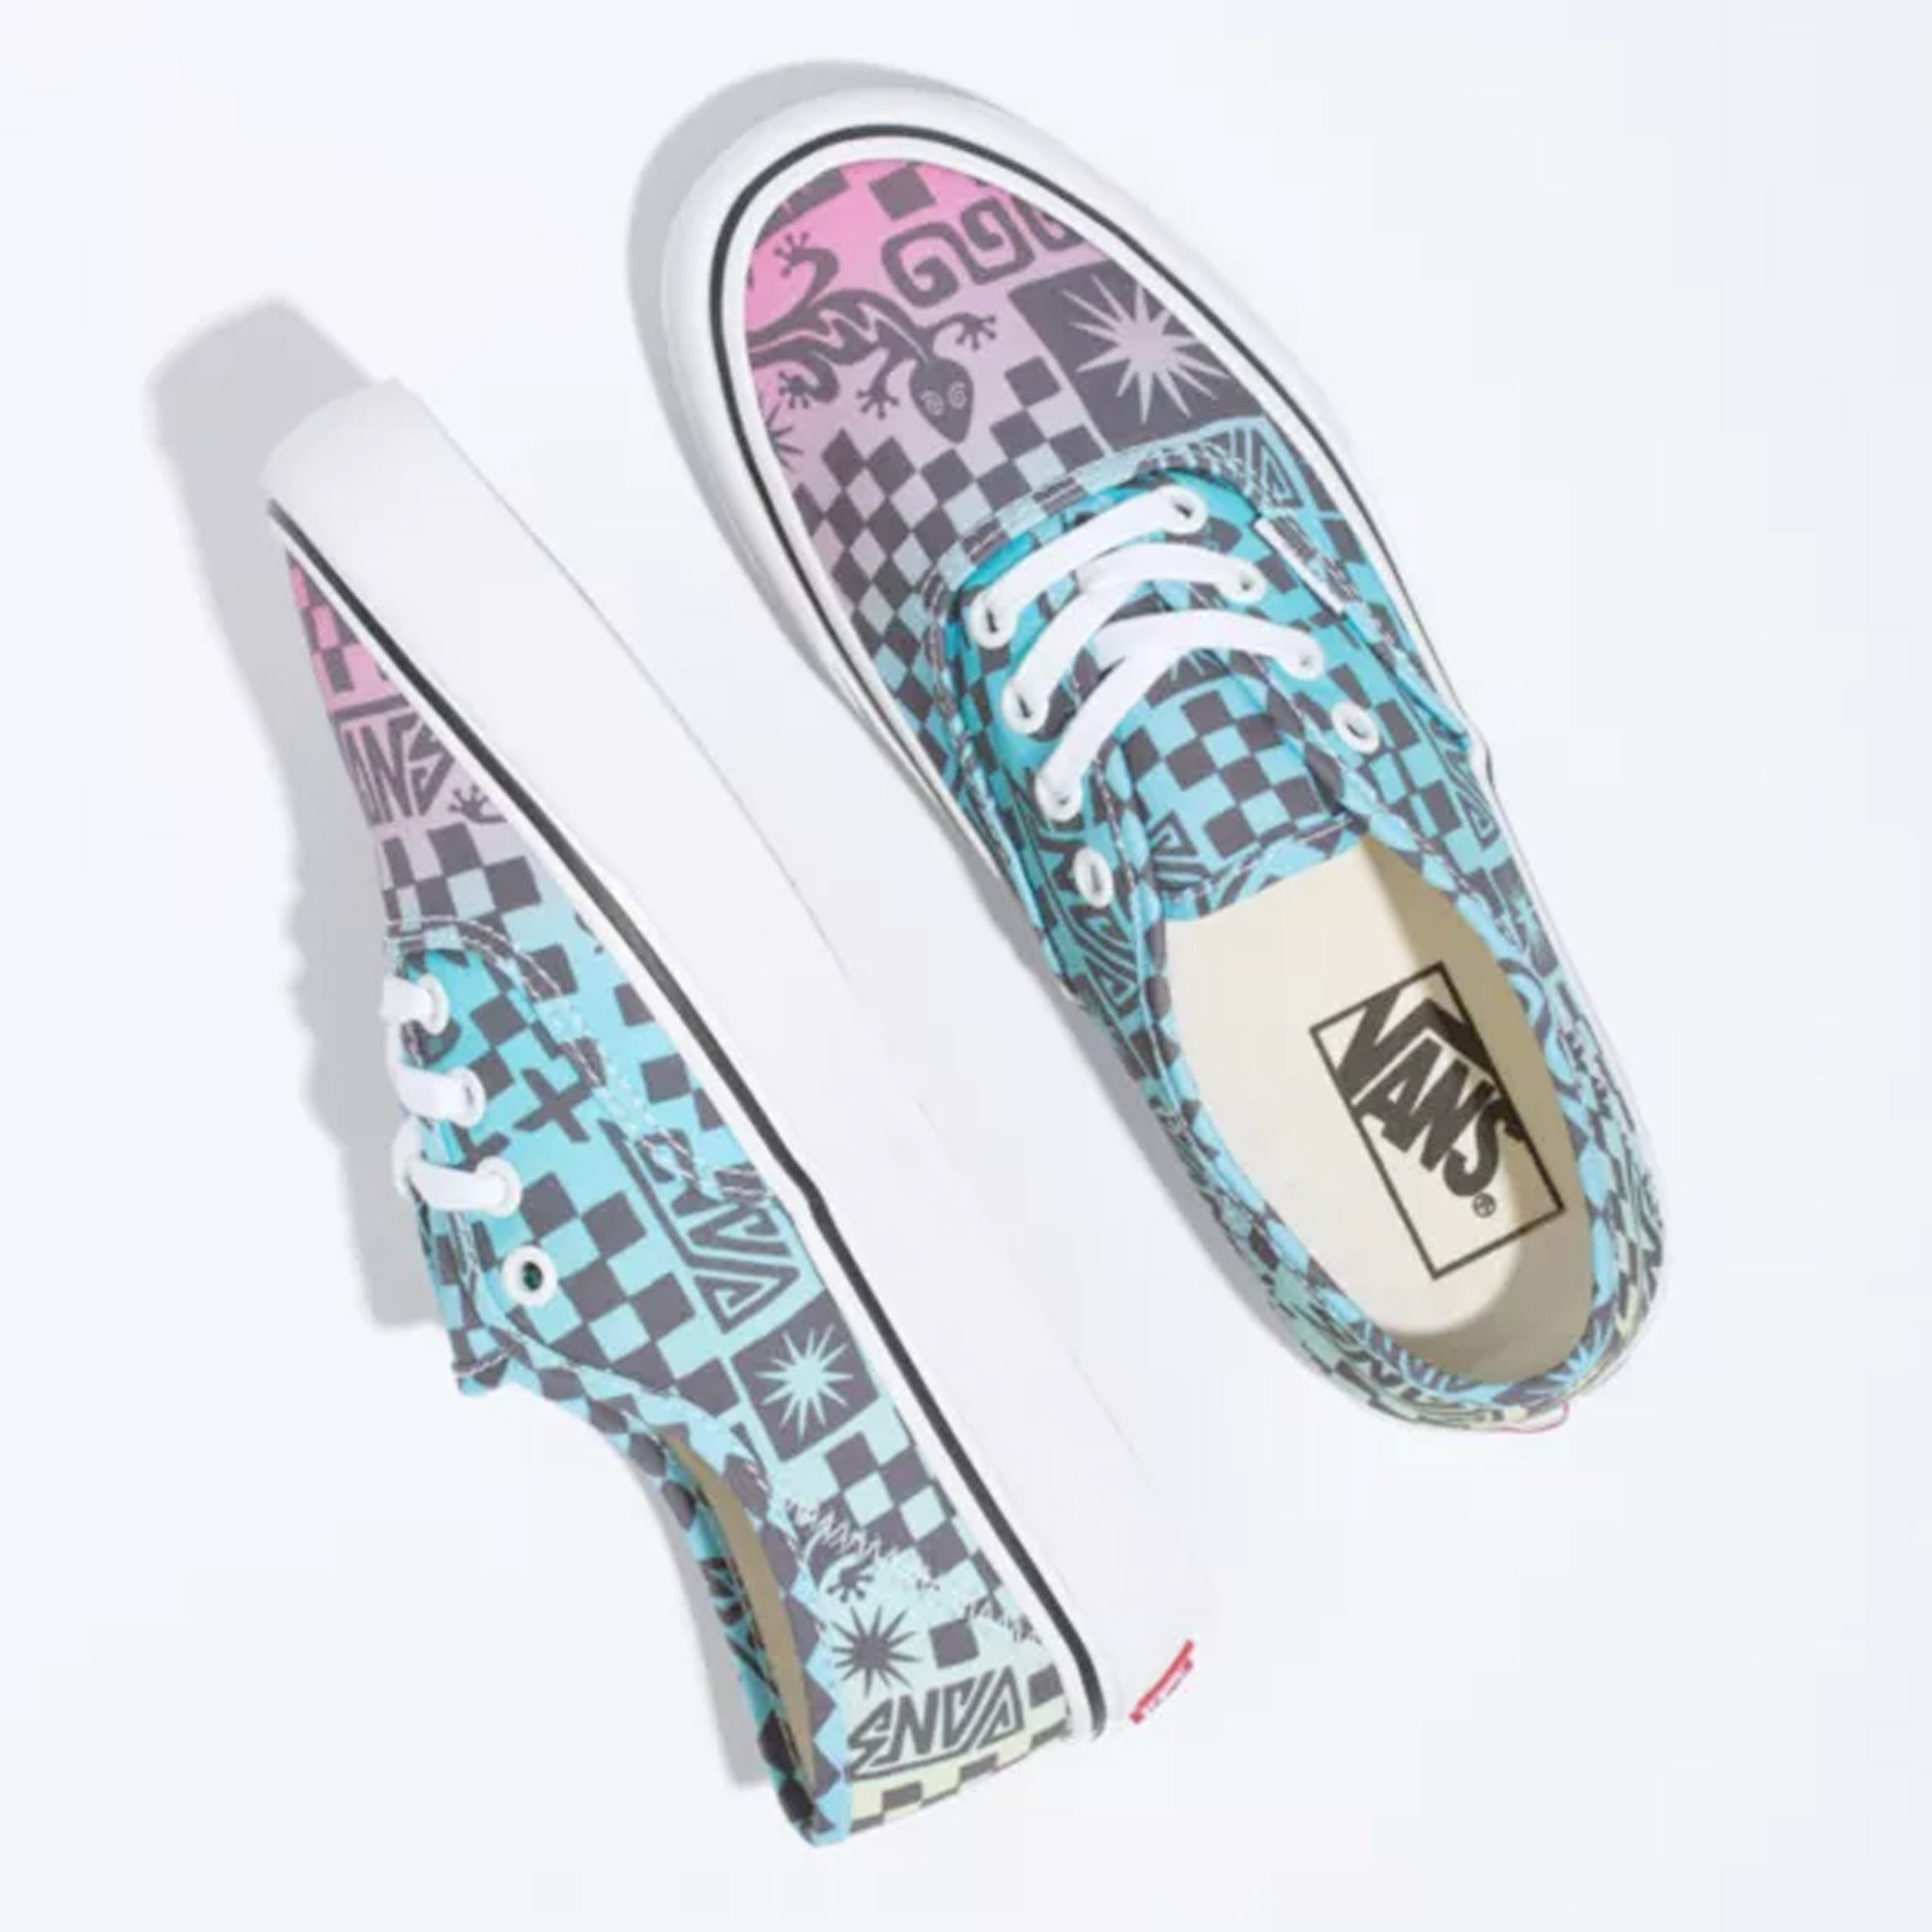 Vans Tribal Check Authentic SF Women's Shoes